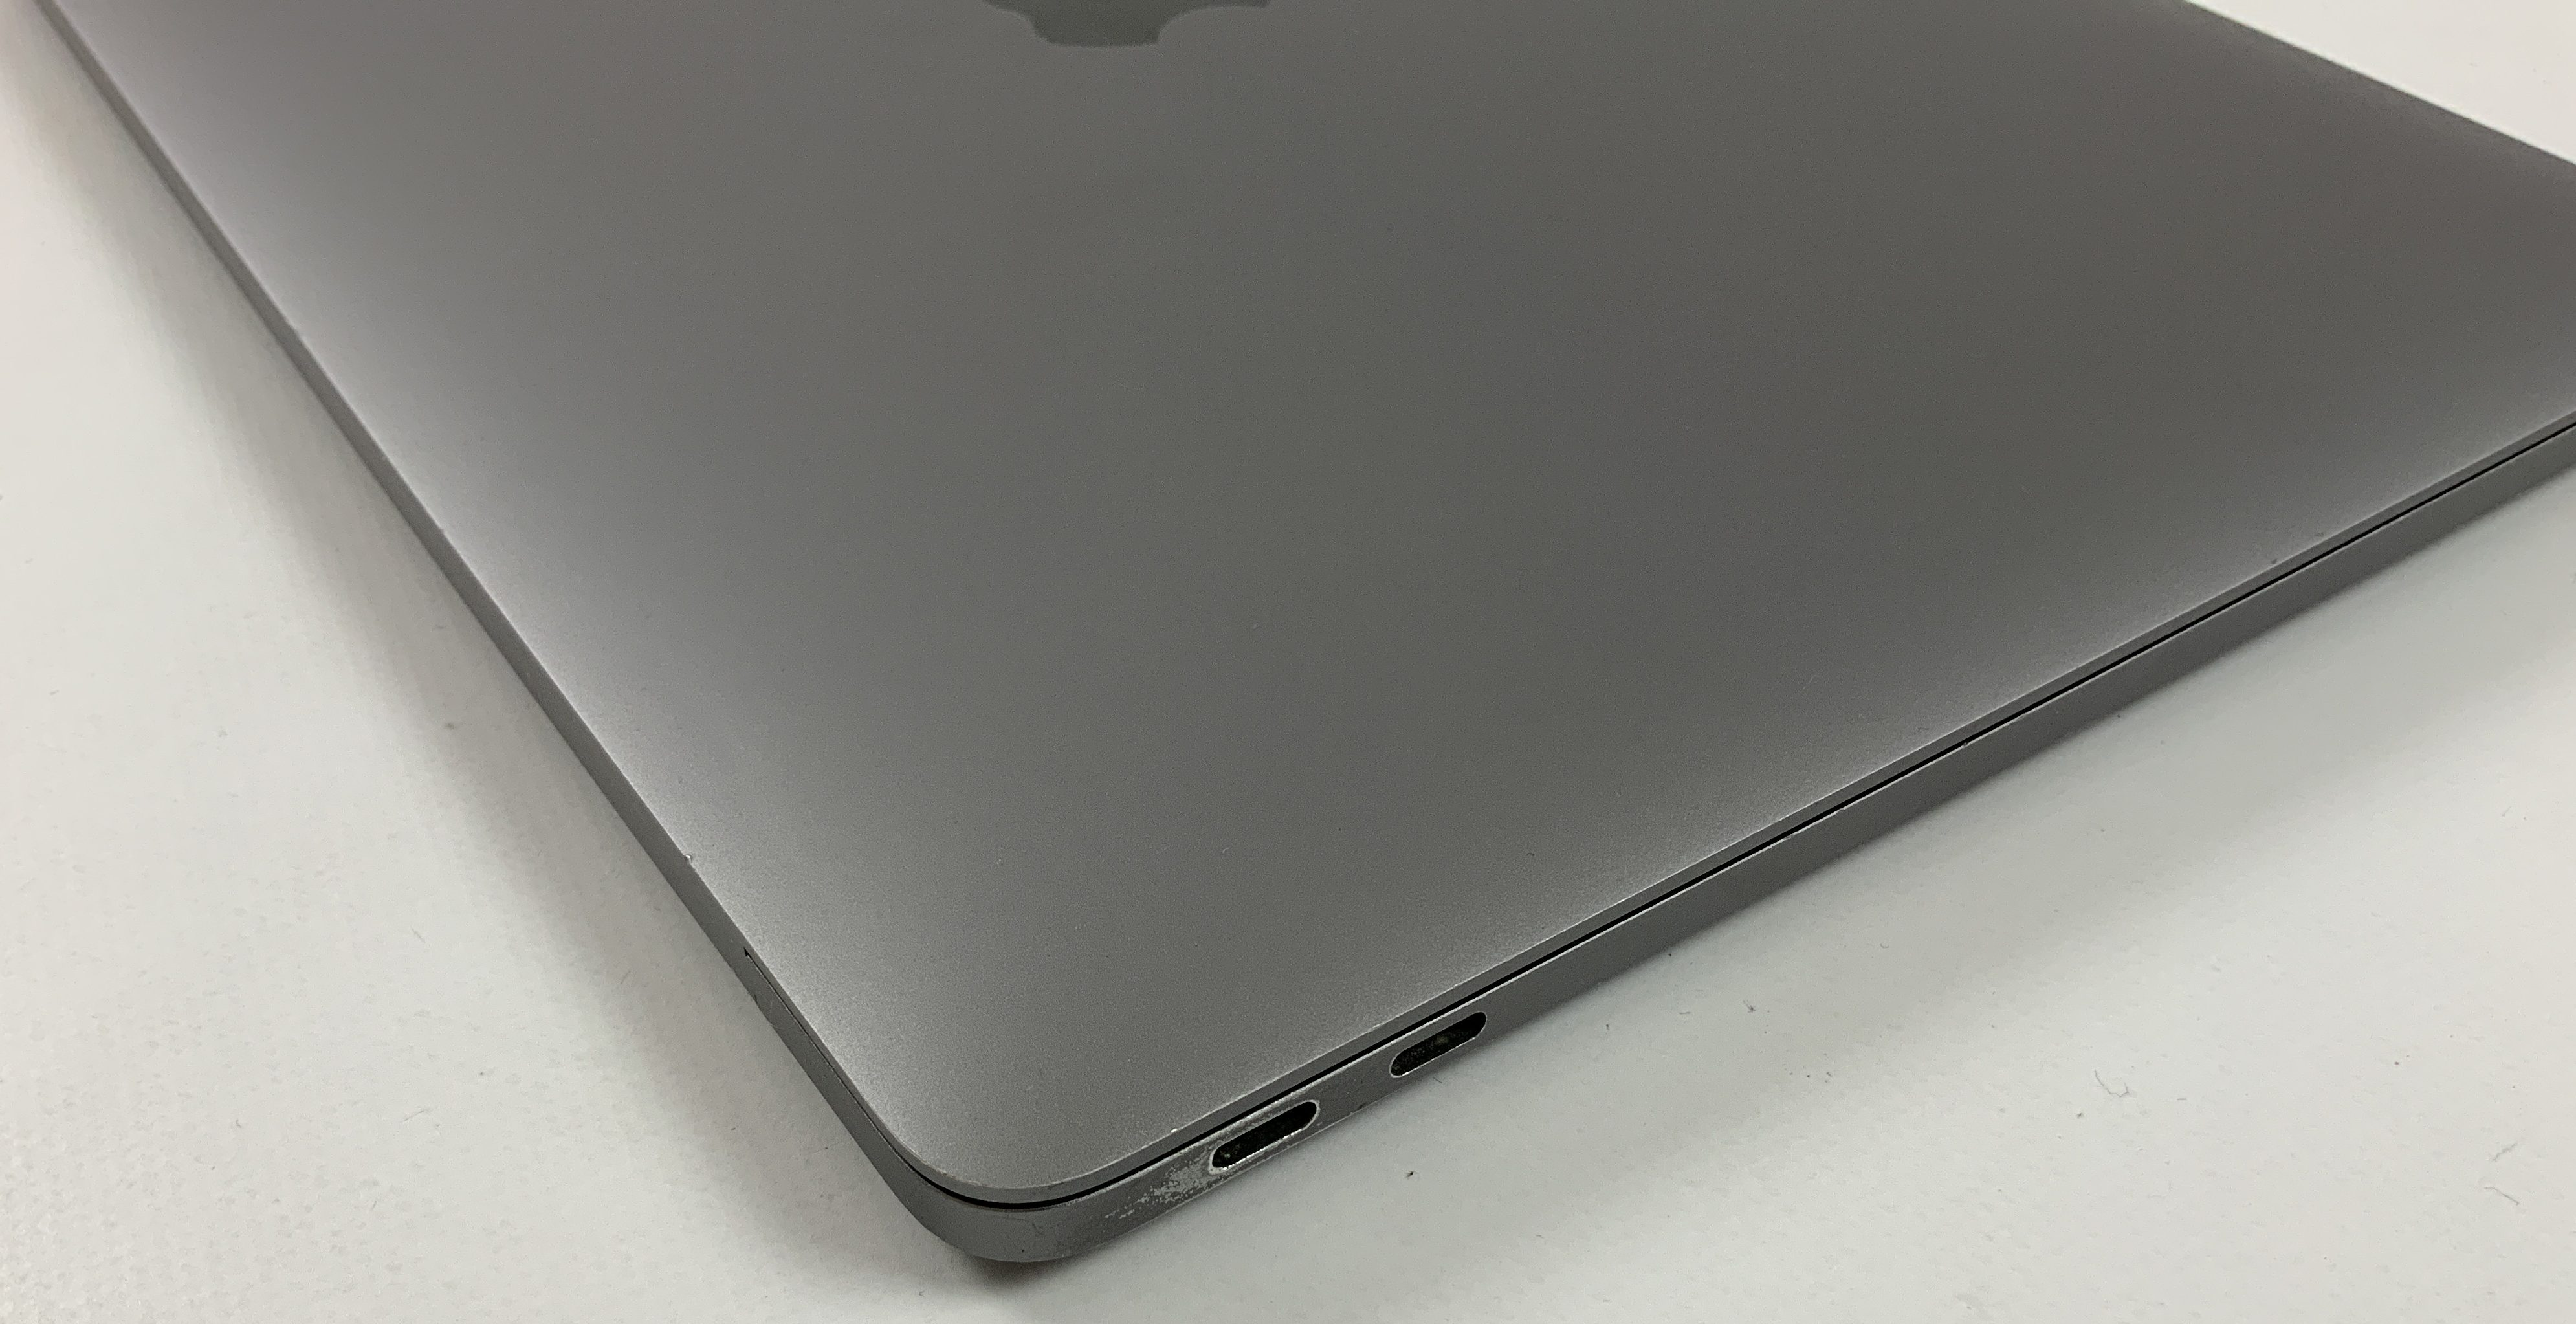 "MacBook Pro 13"" 2TBT Mid 2017 (Intel Core i5 2.3 GHz 8 GB RAM 128 GB SSD), Space Gray, Intel Core i5 2.3 GHz, 8 GB RAM, 128 GB SSD, bild 3"